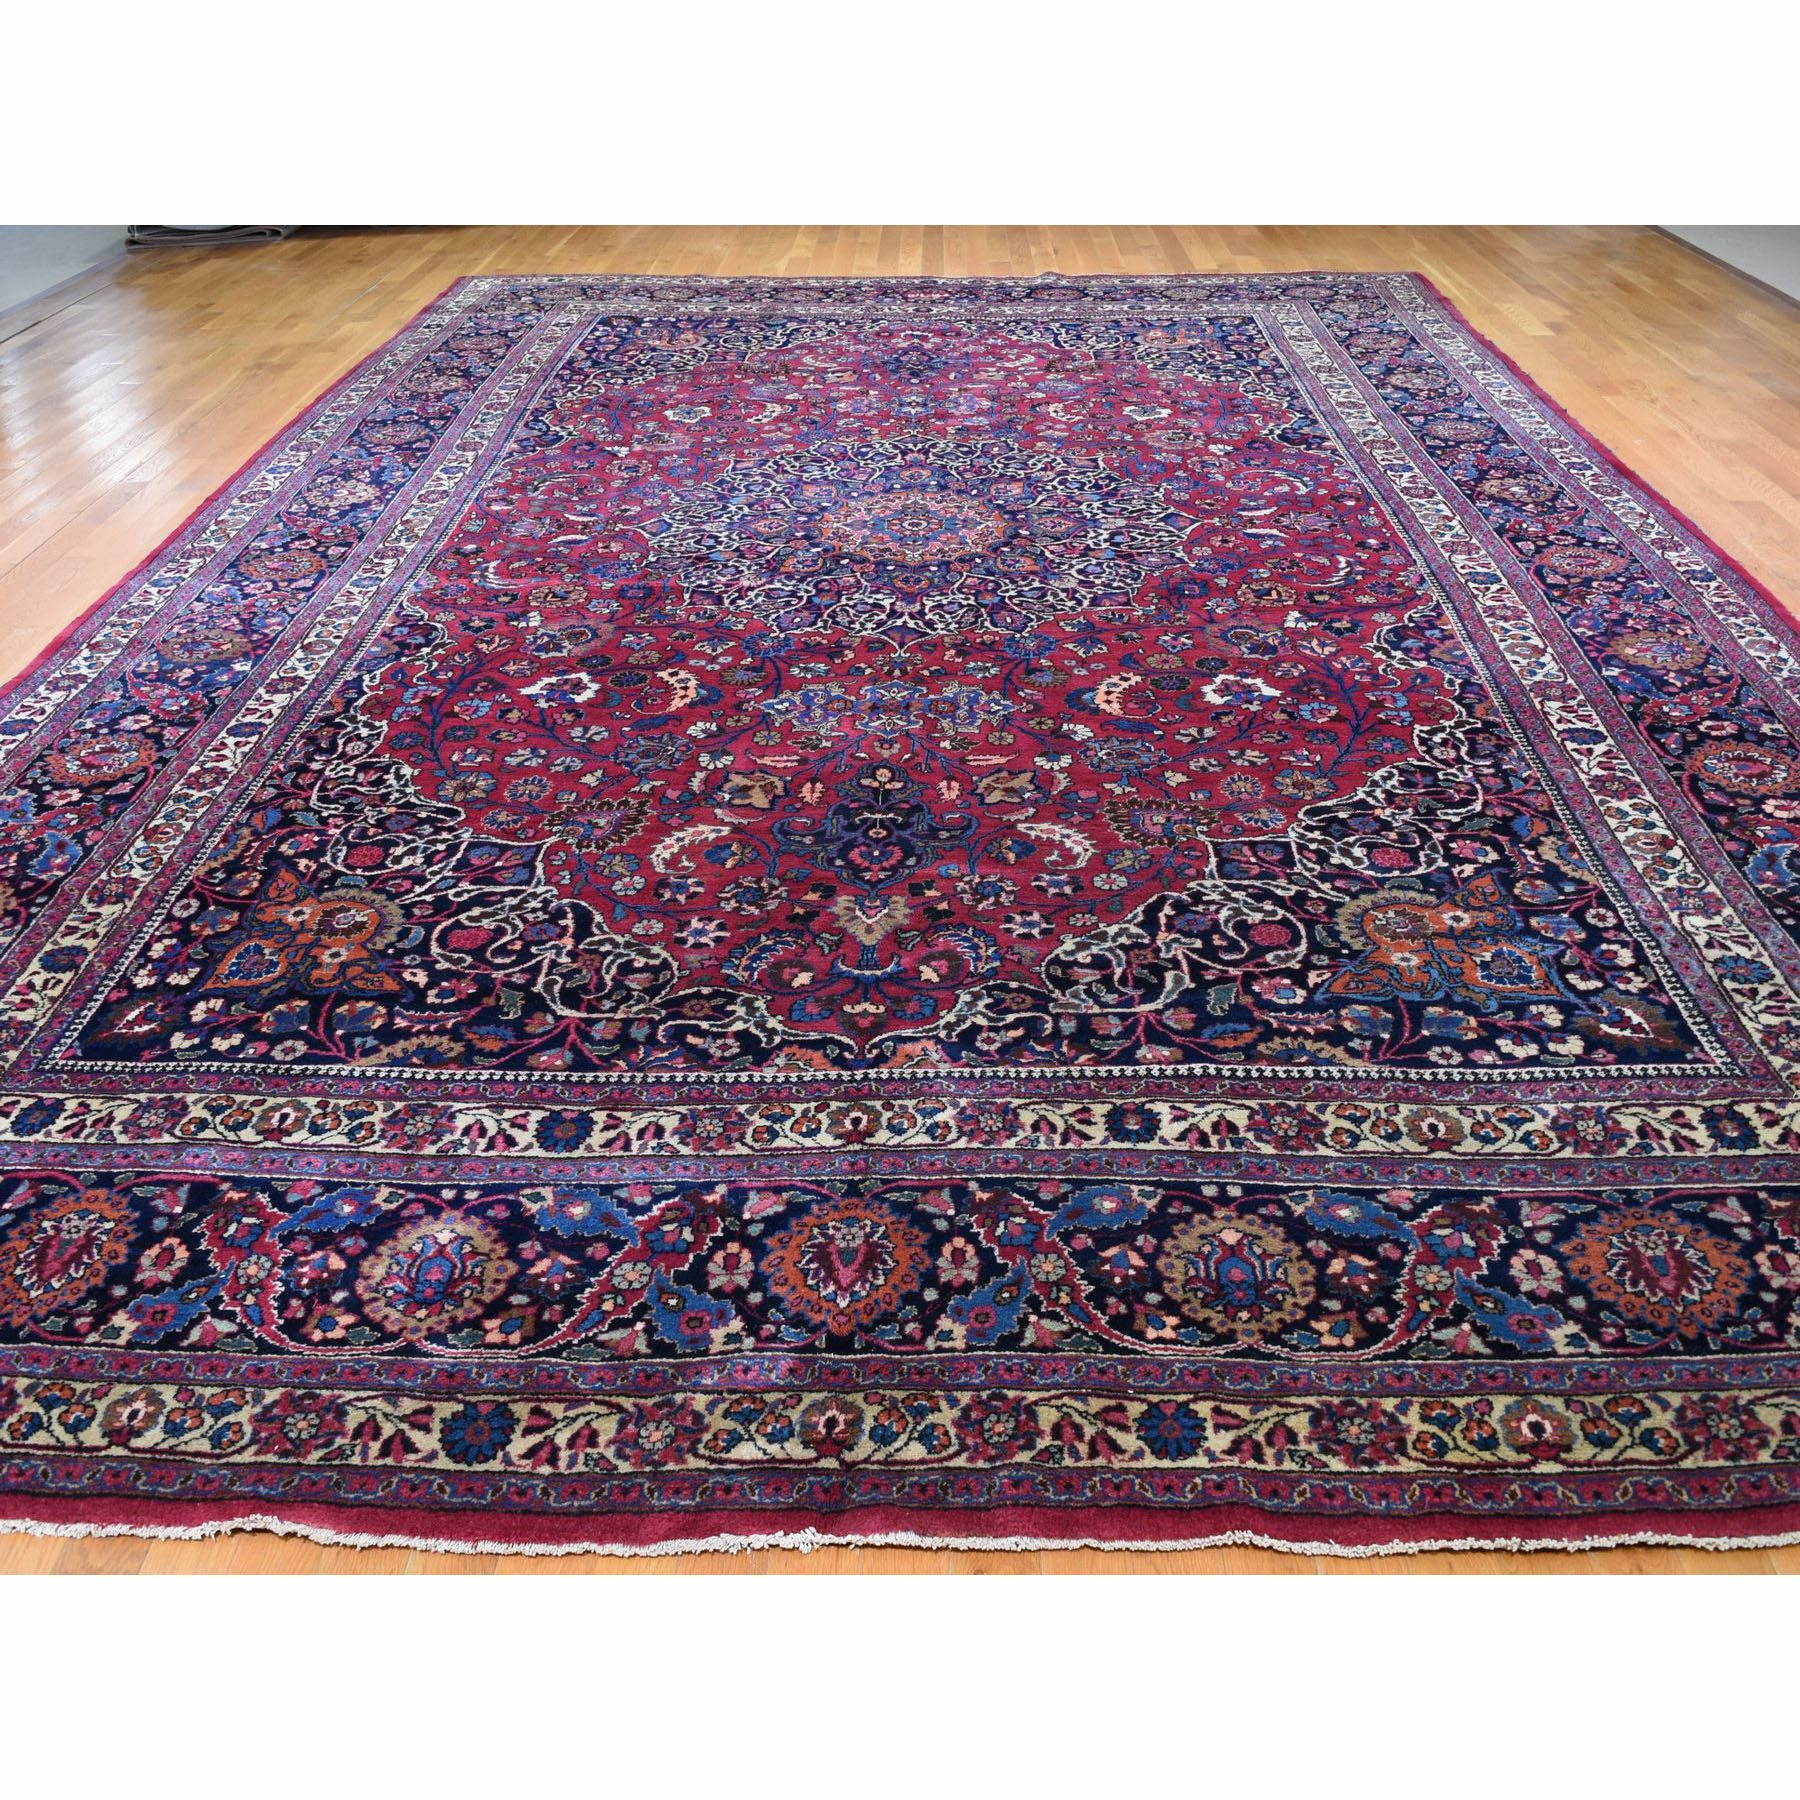 """11'5""""x16'9"""" Red Oversized Vintage Persian Signed Mashad Exc Condition Pure Wool hand Knotted Oriental Rug"""